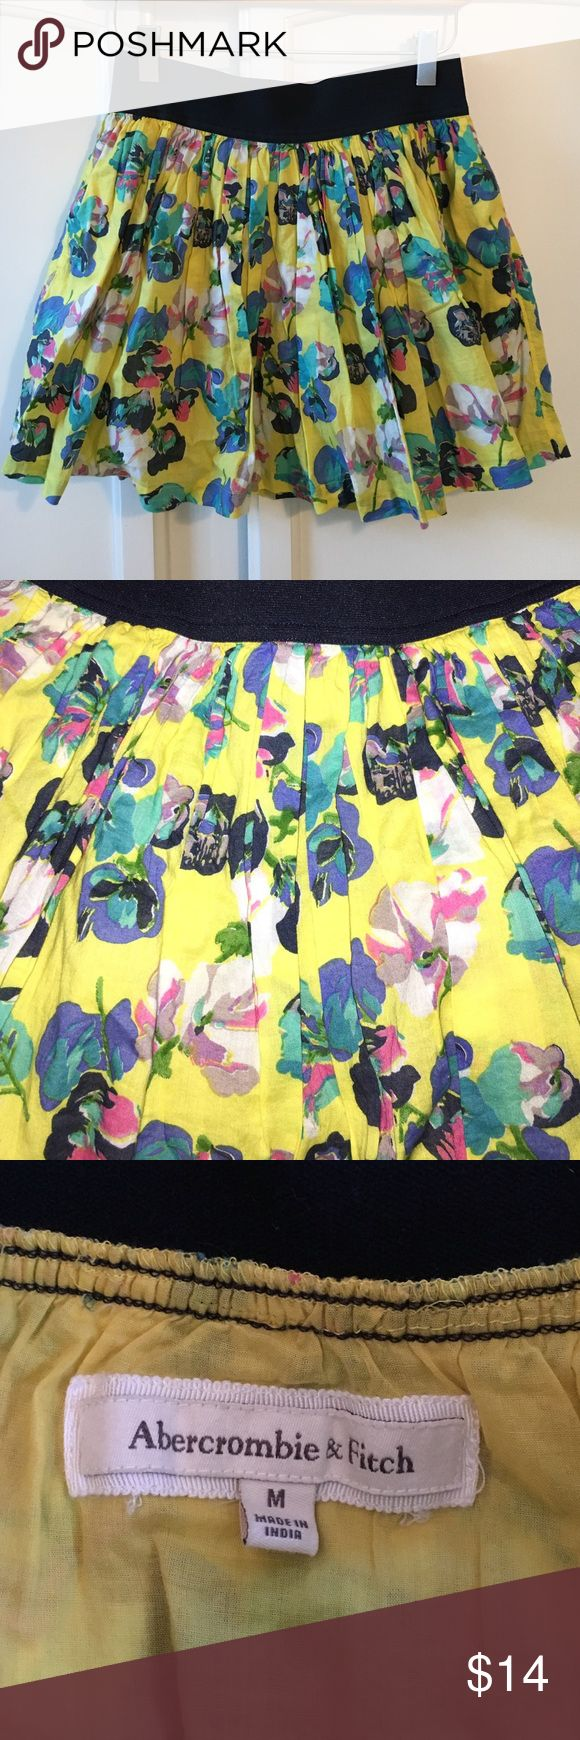 Abercrombie and Fitch Skirt Yellow, pink and blue flower skirt. Lightly worn but still in very good condition. Size medium but fits more like a small. Abercrombie & Fitch Skirts